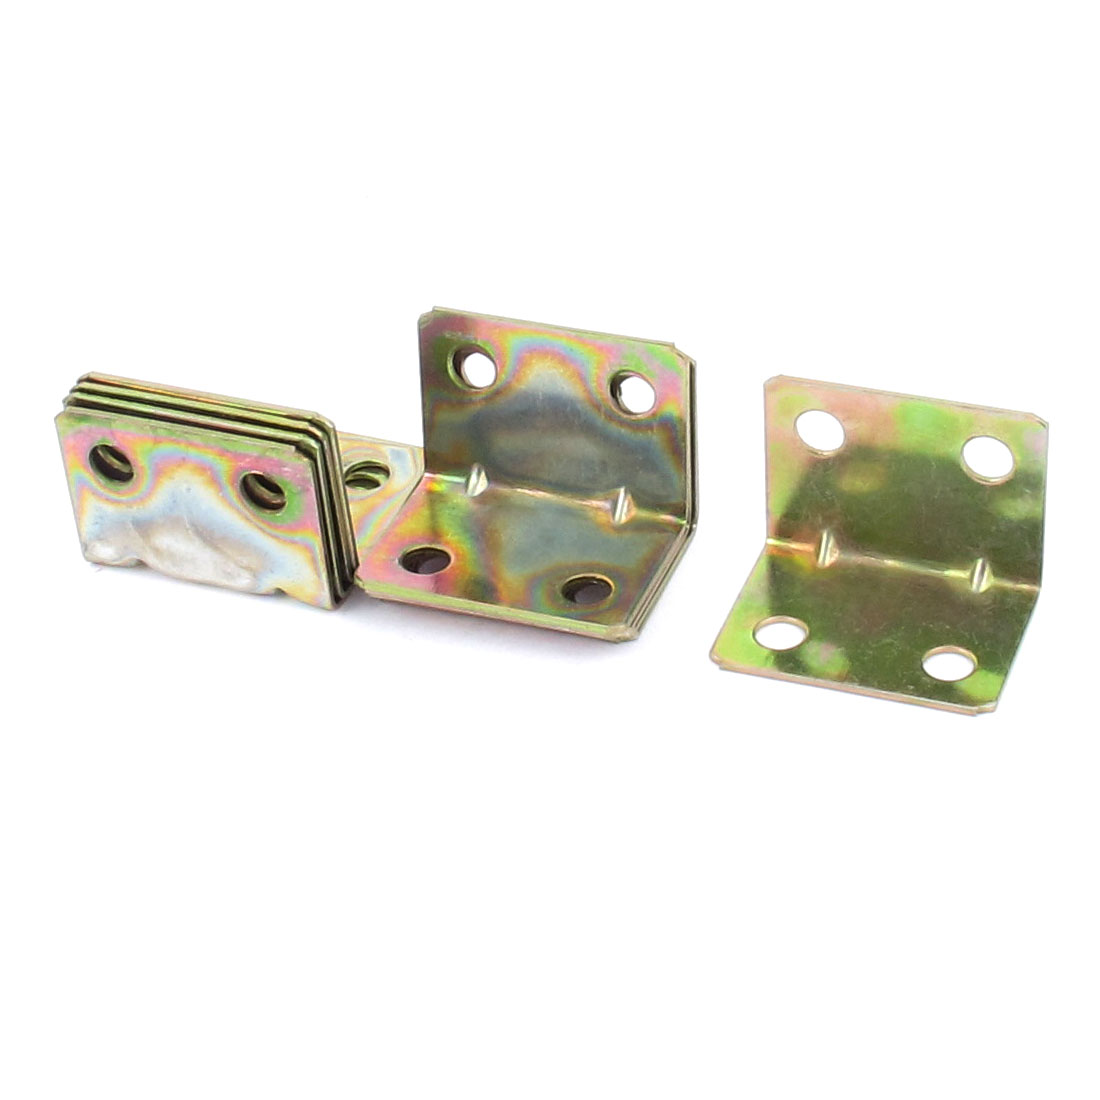 10pcs 20mmx20mm Shelf Corner Brace Joint 4 Holes Design Support Right Angle Bracket